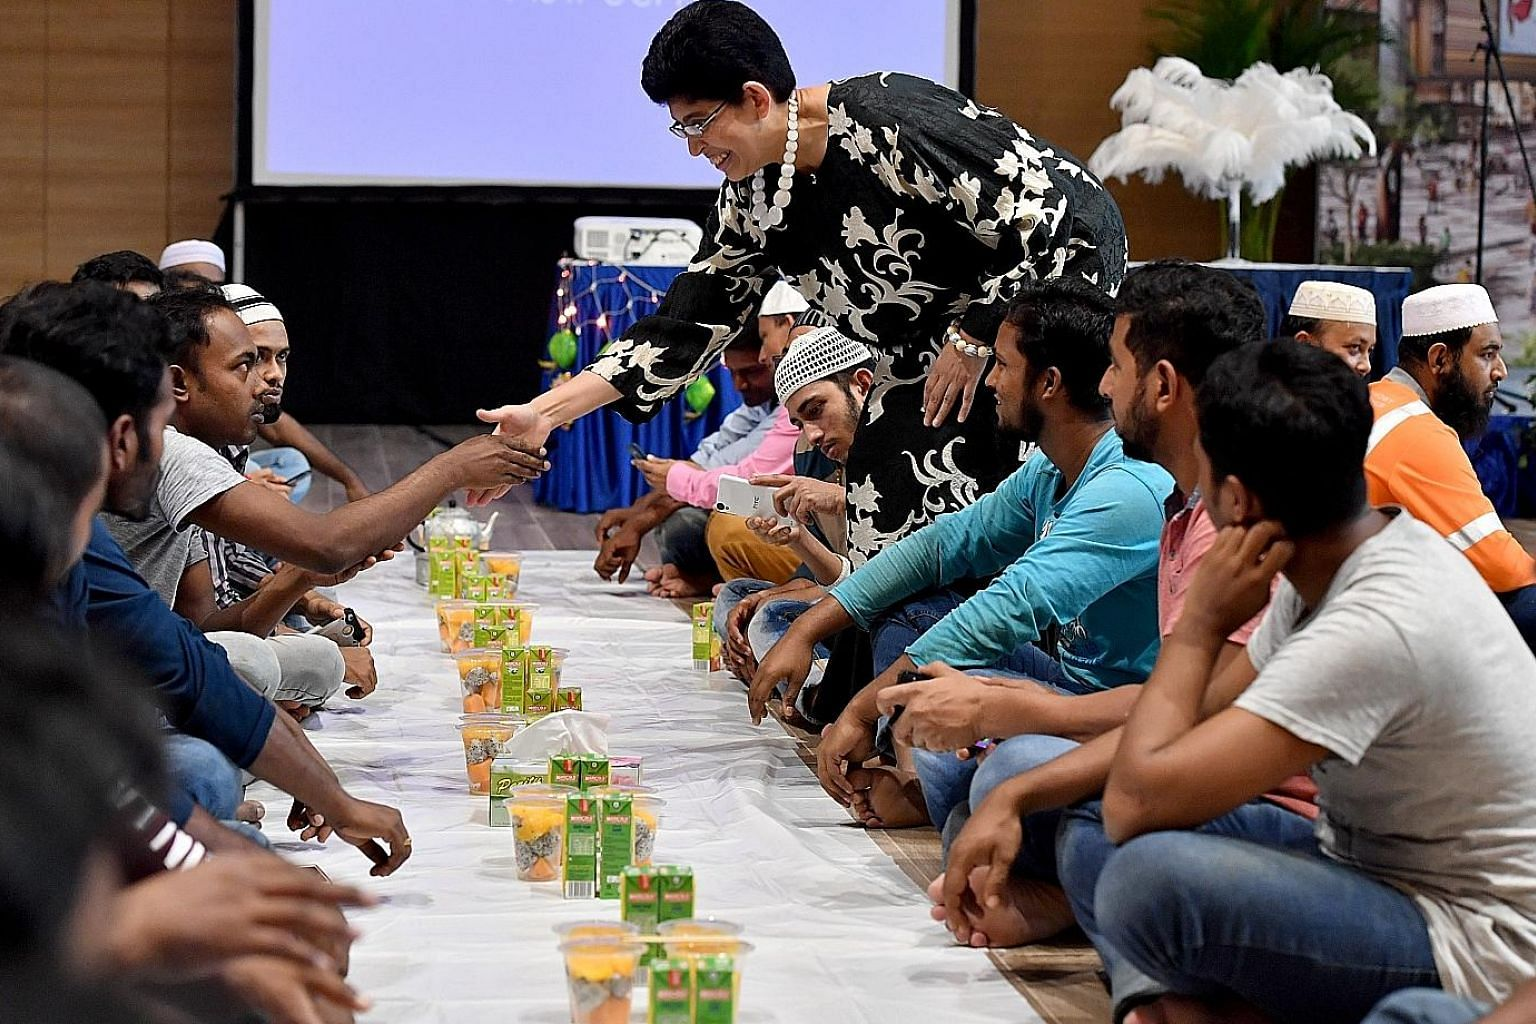 MP for Marine Parade GRC Fatimah Lateef shaking hands with a migrant worker during the Ramadan break fast session for about 240 migrant workers at Wisma Geylang Serai yesterday.